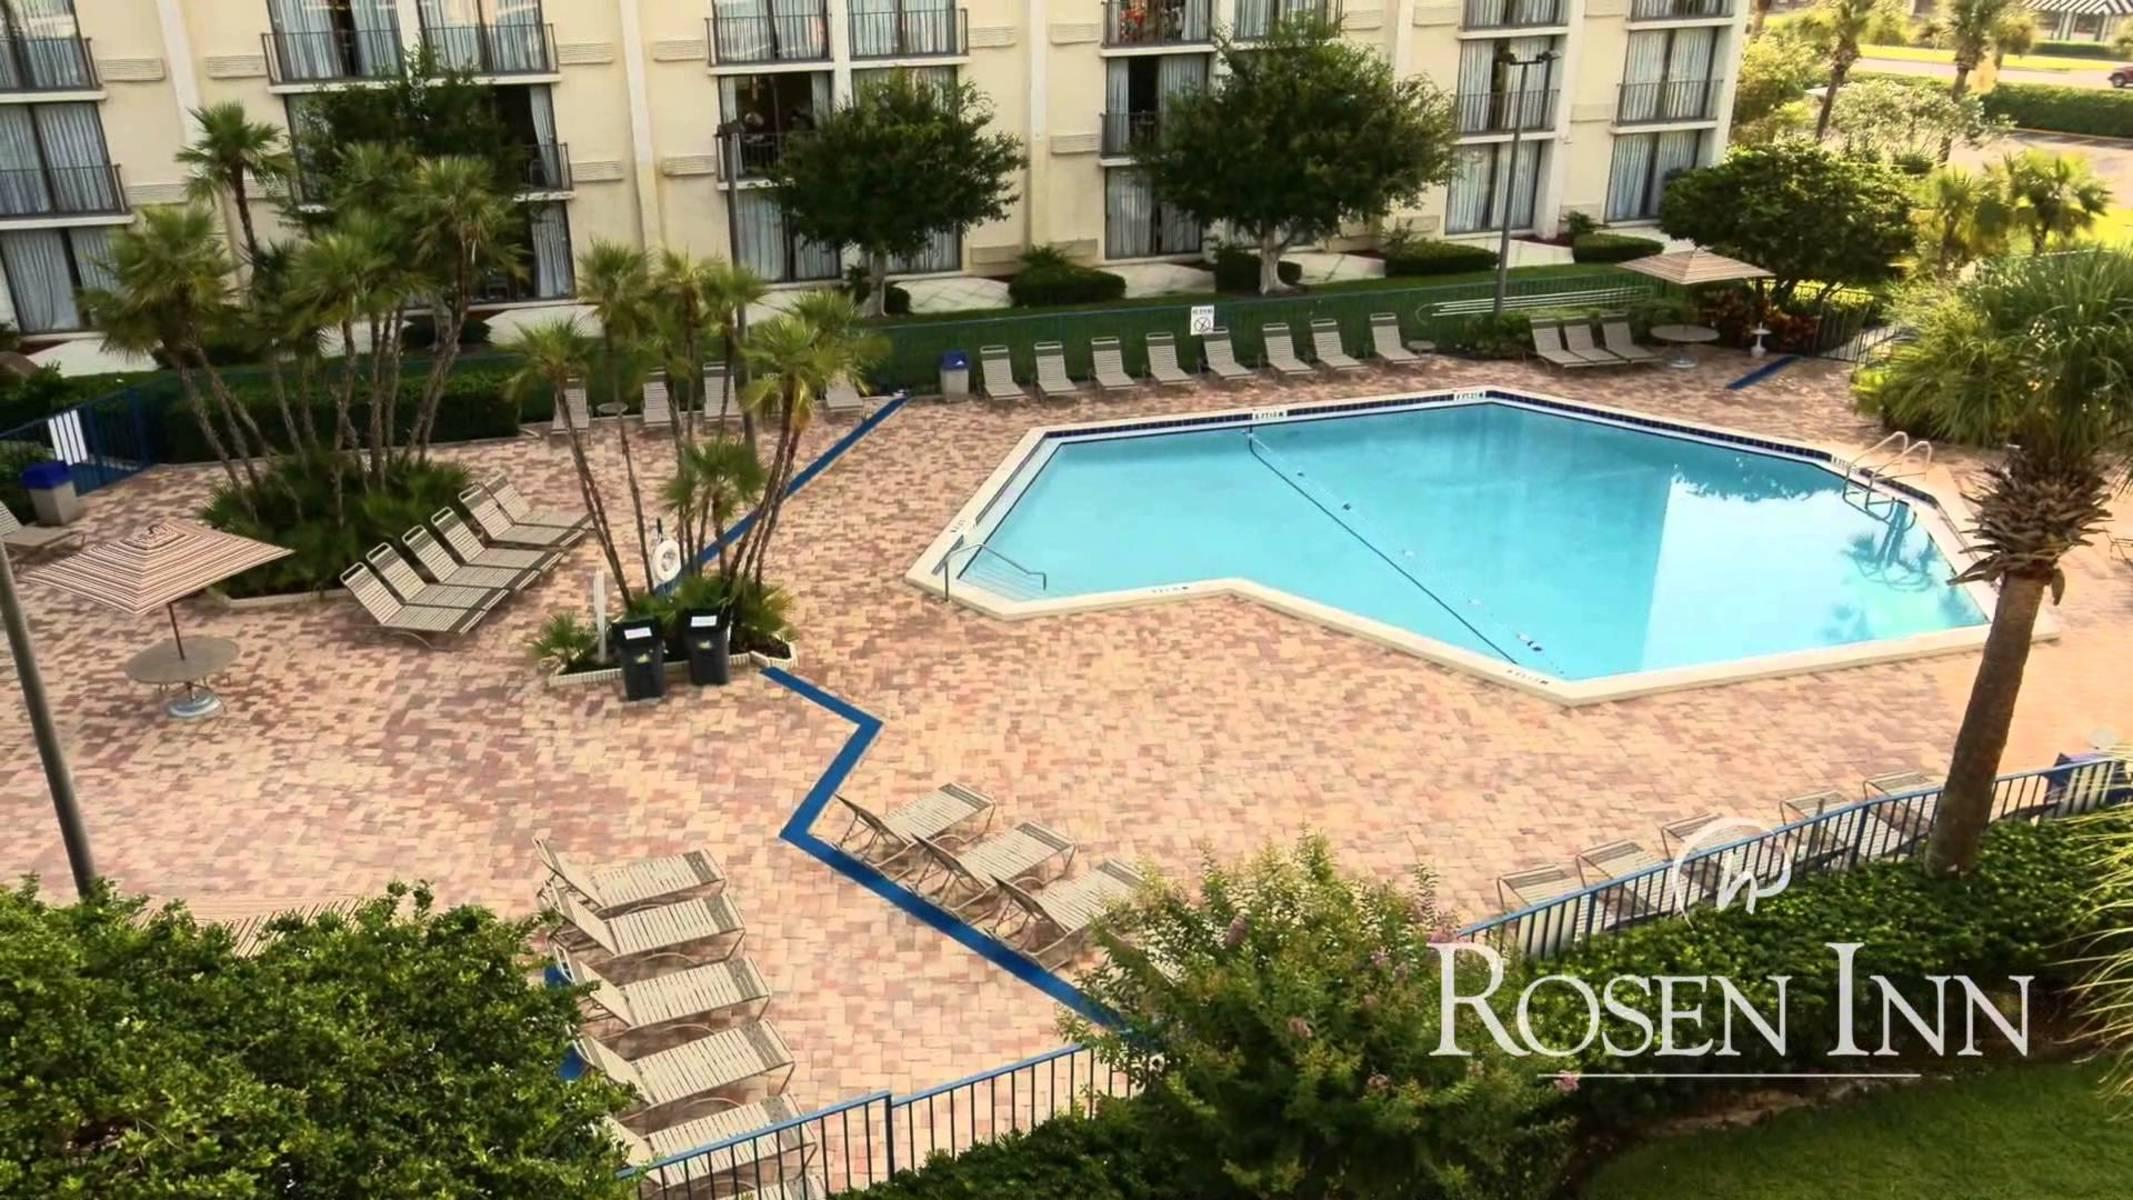 Rosen Inn Closest To Universal In Orlando Usa Holidays